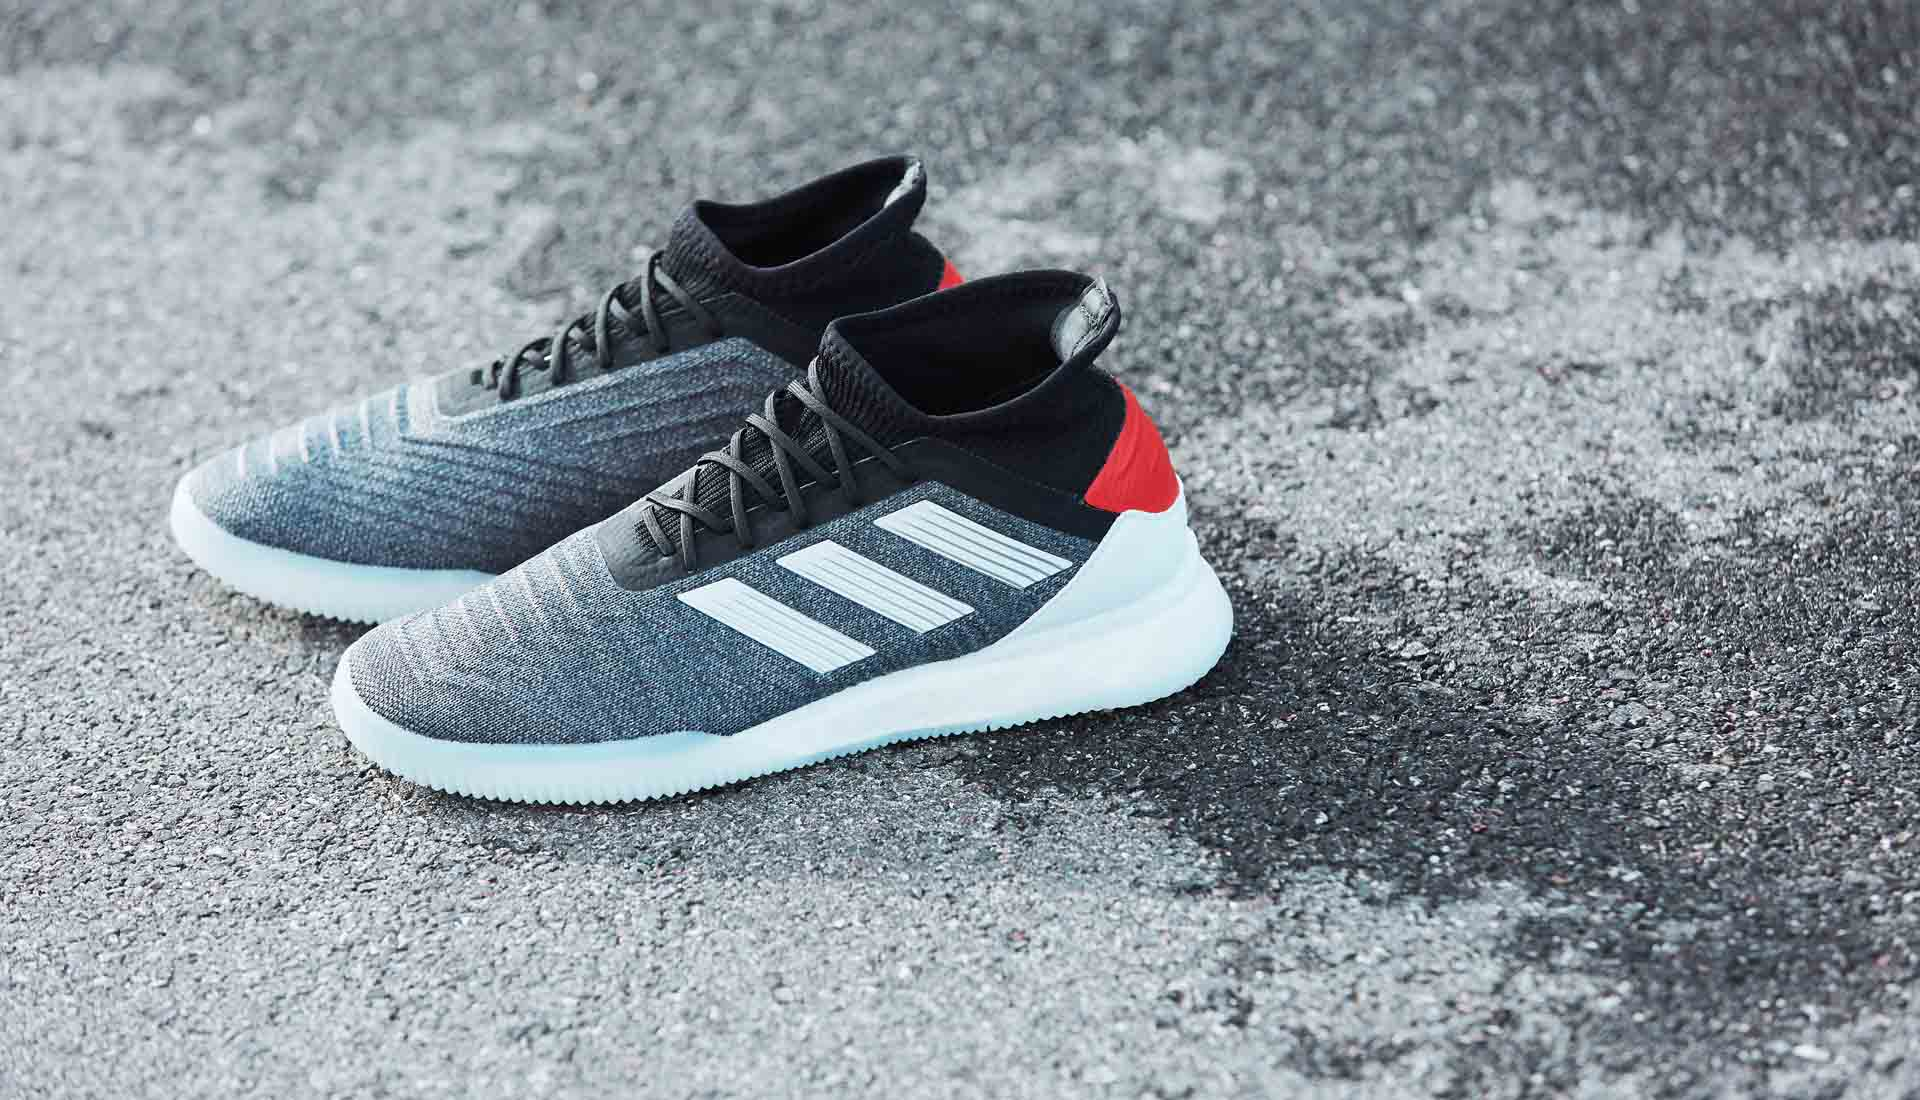 adidas Launch The Predator 19.1 TR In Two New Colourways ...